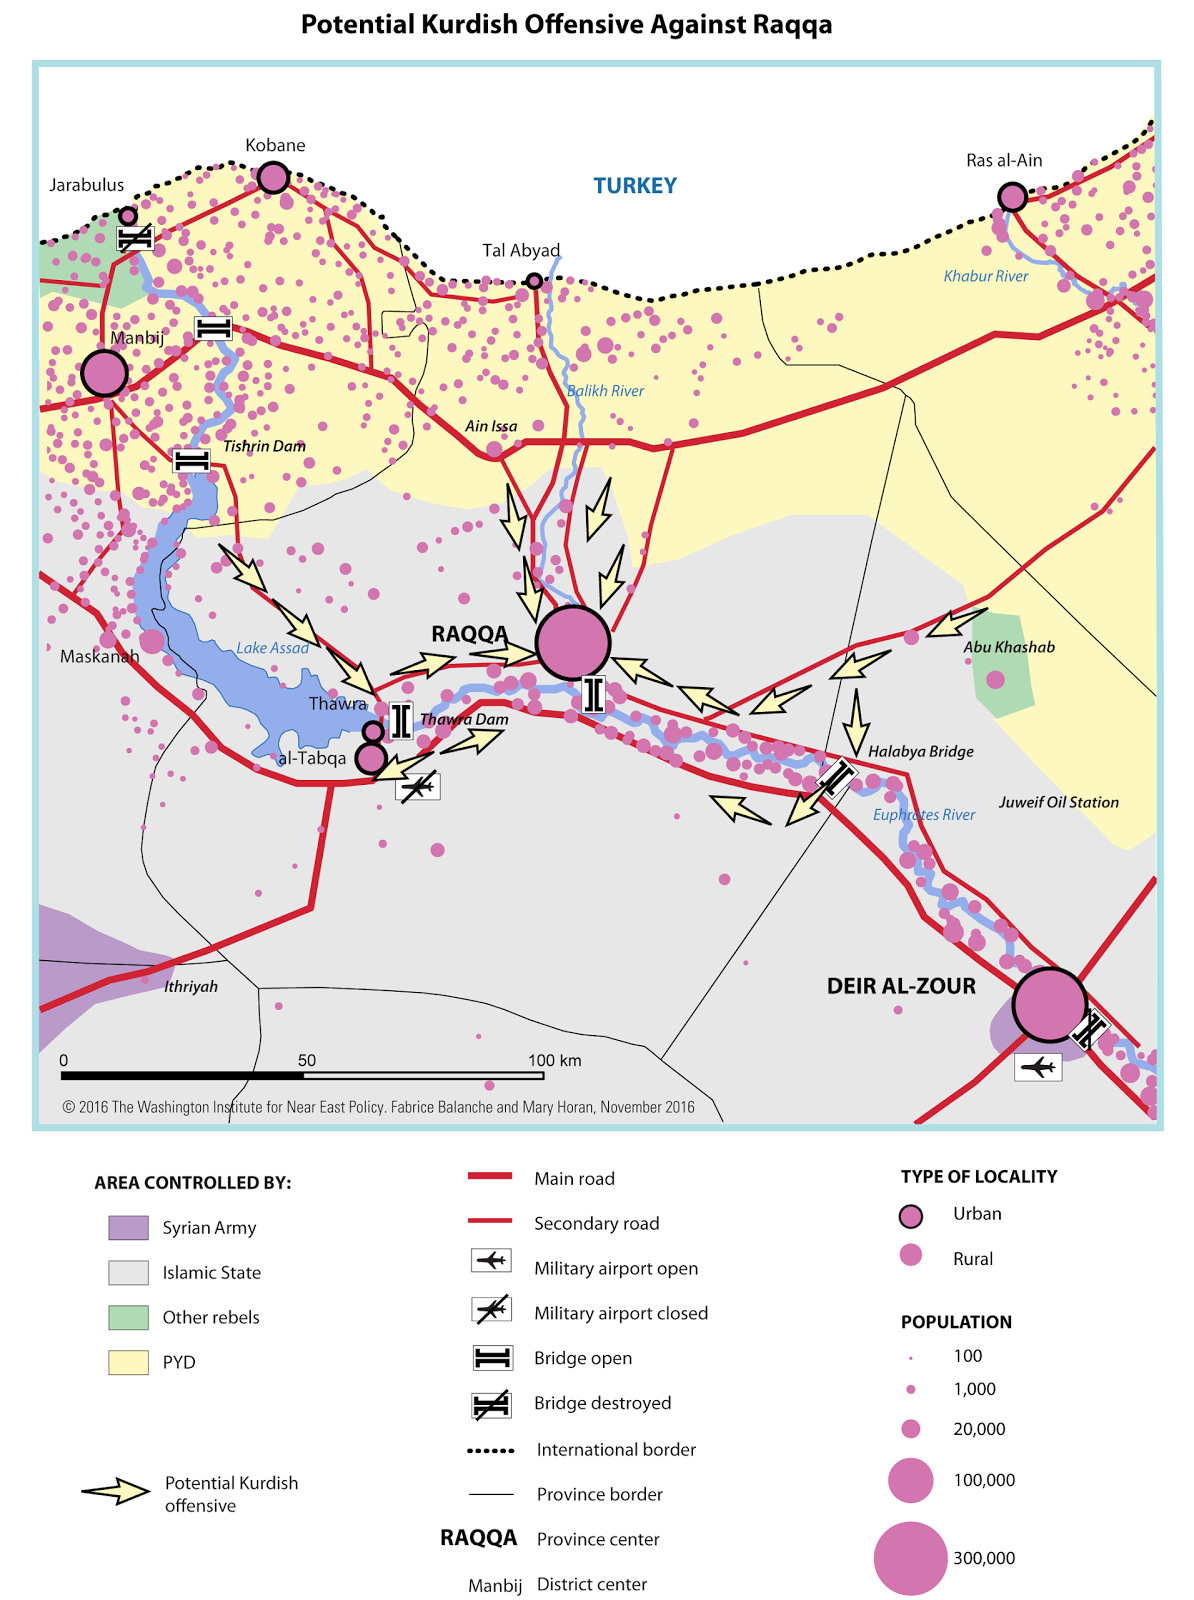 article roads to raqqa potential turkish and kurdish offensives by fabrice balanche